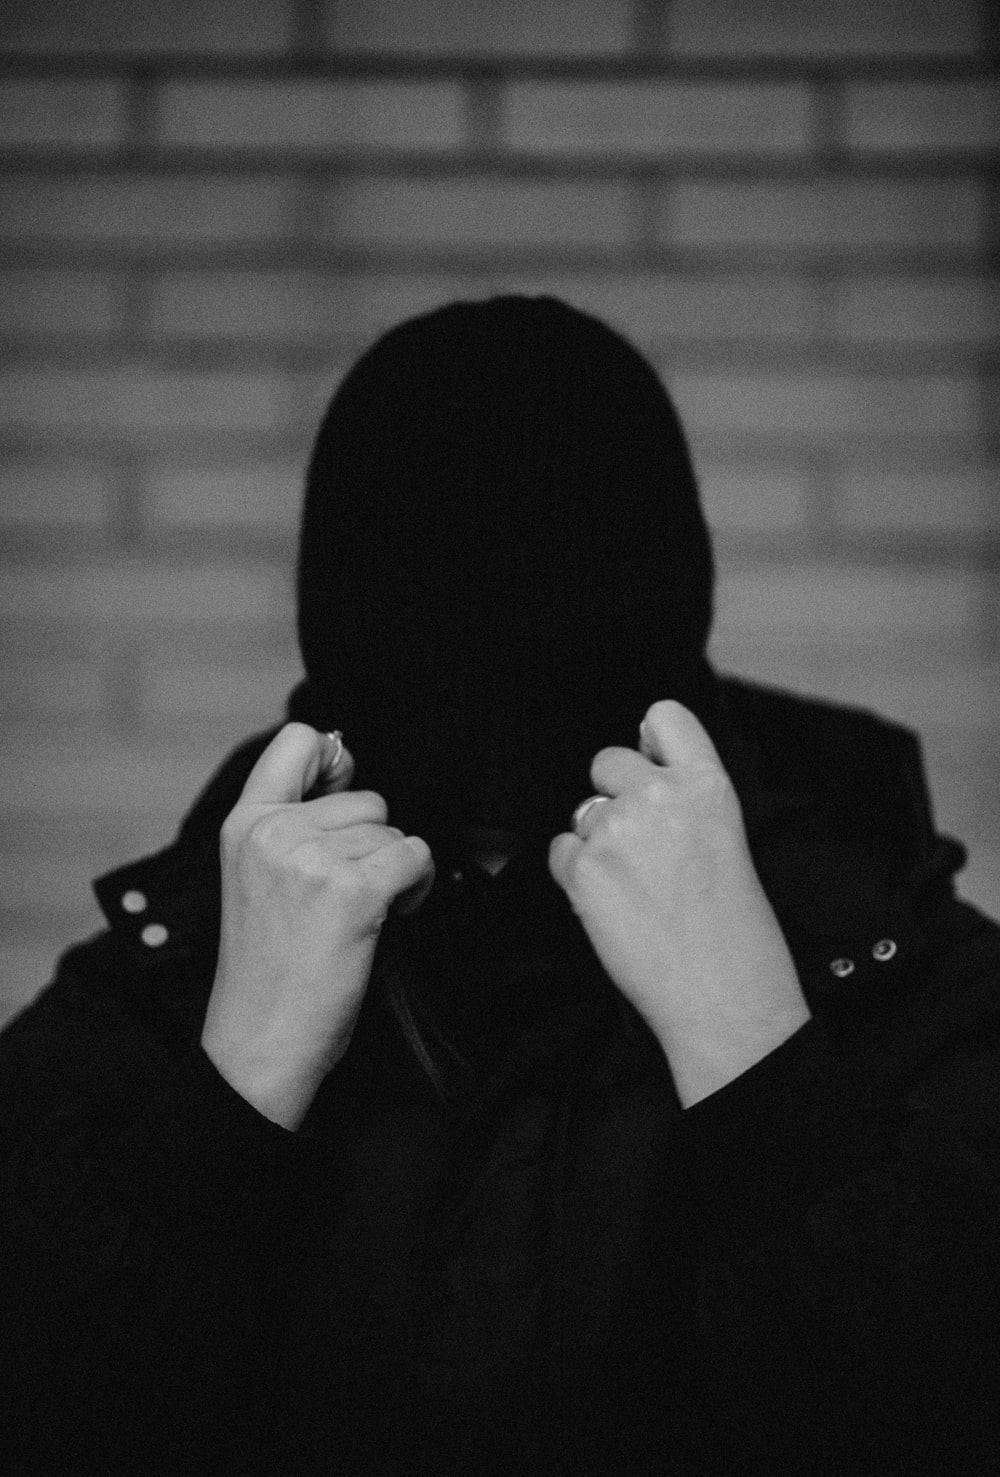 grayscale photo of person covering face with knit cap